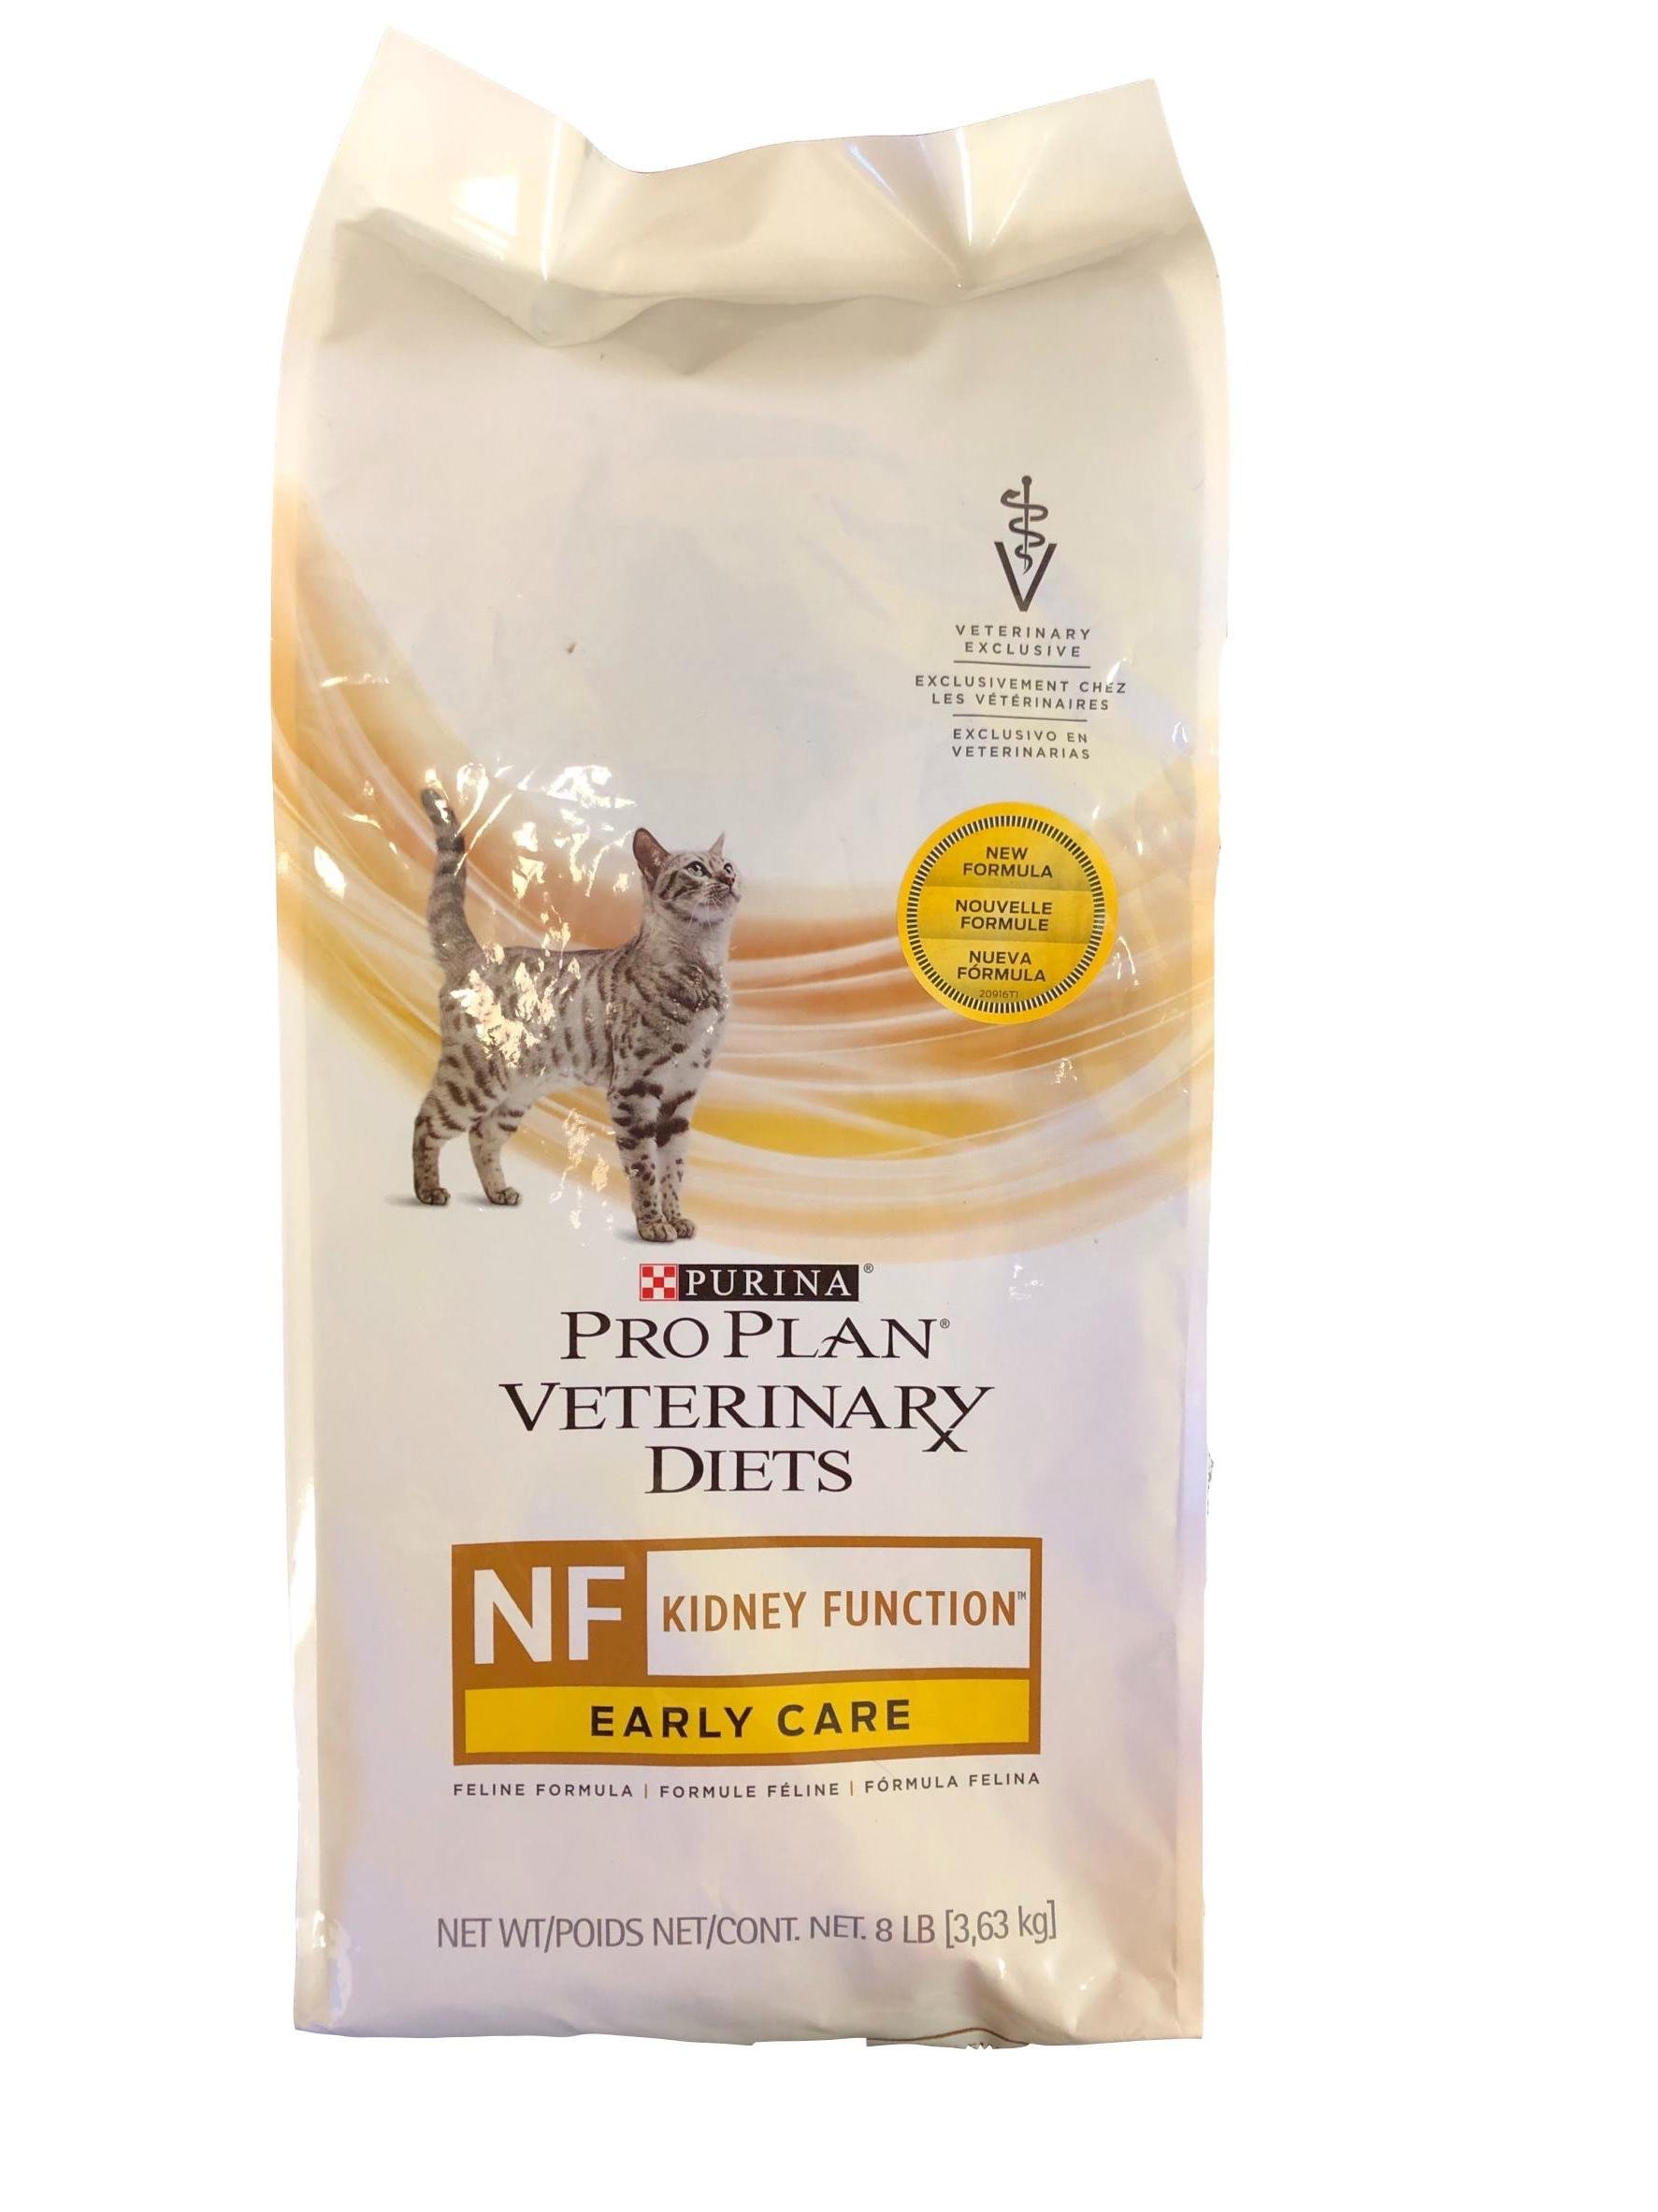 Purina Pro Plan Veterinary Diets 17901 Ppvd Feline Nf Early Care Cat Food, 8 lb by Purina Pro Plan Veterinary Diets